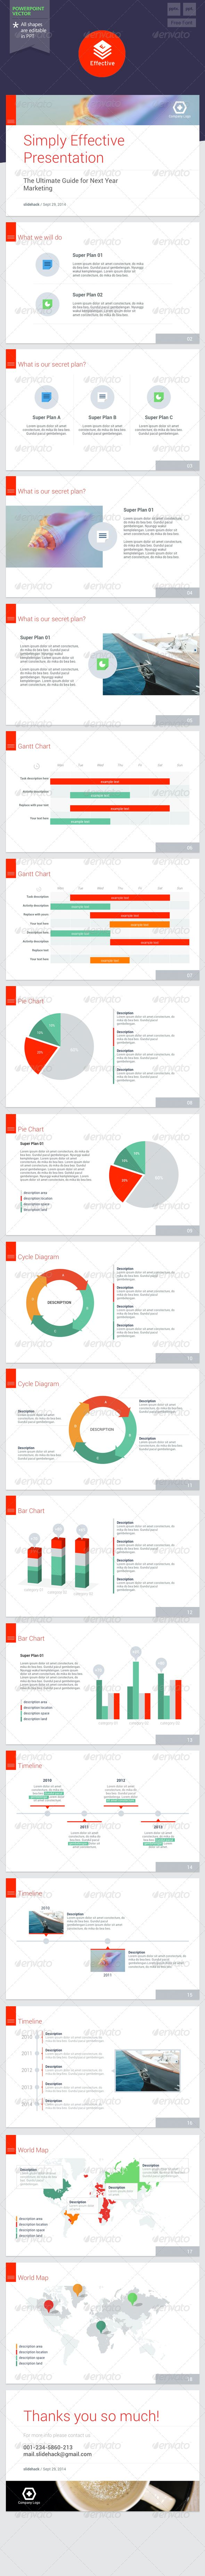 Effective - Powerpoint Template - PowerPoint Templates Presentation Template. Download here: http://graphicriver.net/item/effective-powerpoint-template/5999312?s_rank=1800&ref=yinkira